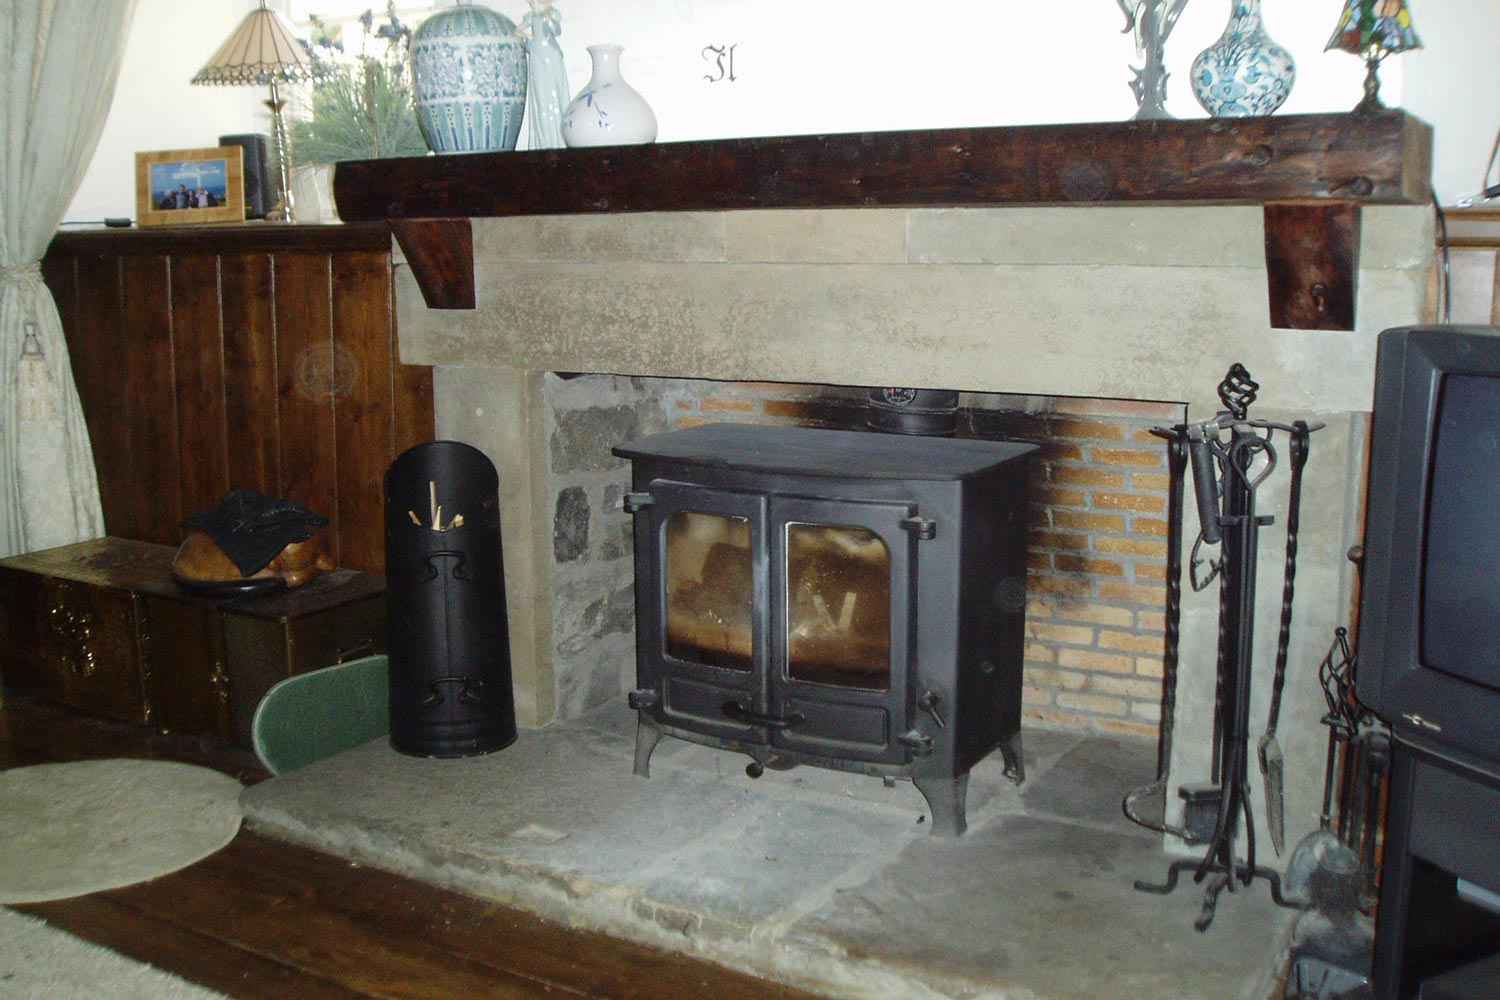 A simple sandstone fireplace to accommodate a large stove